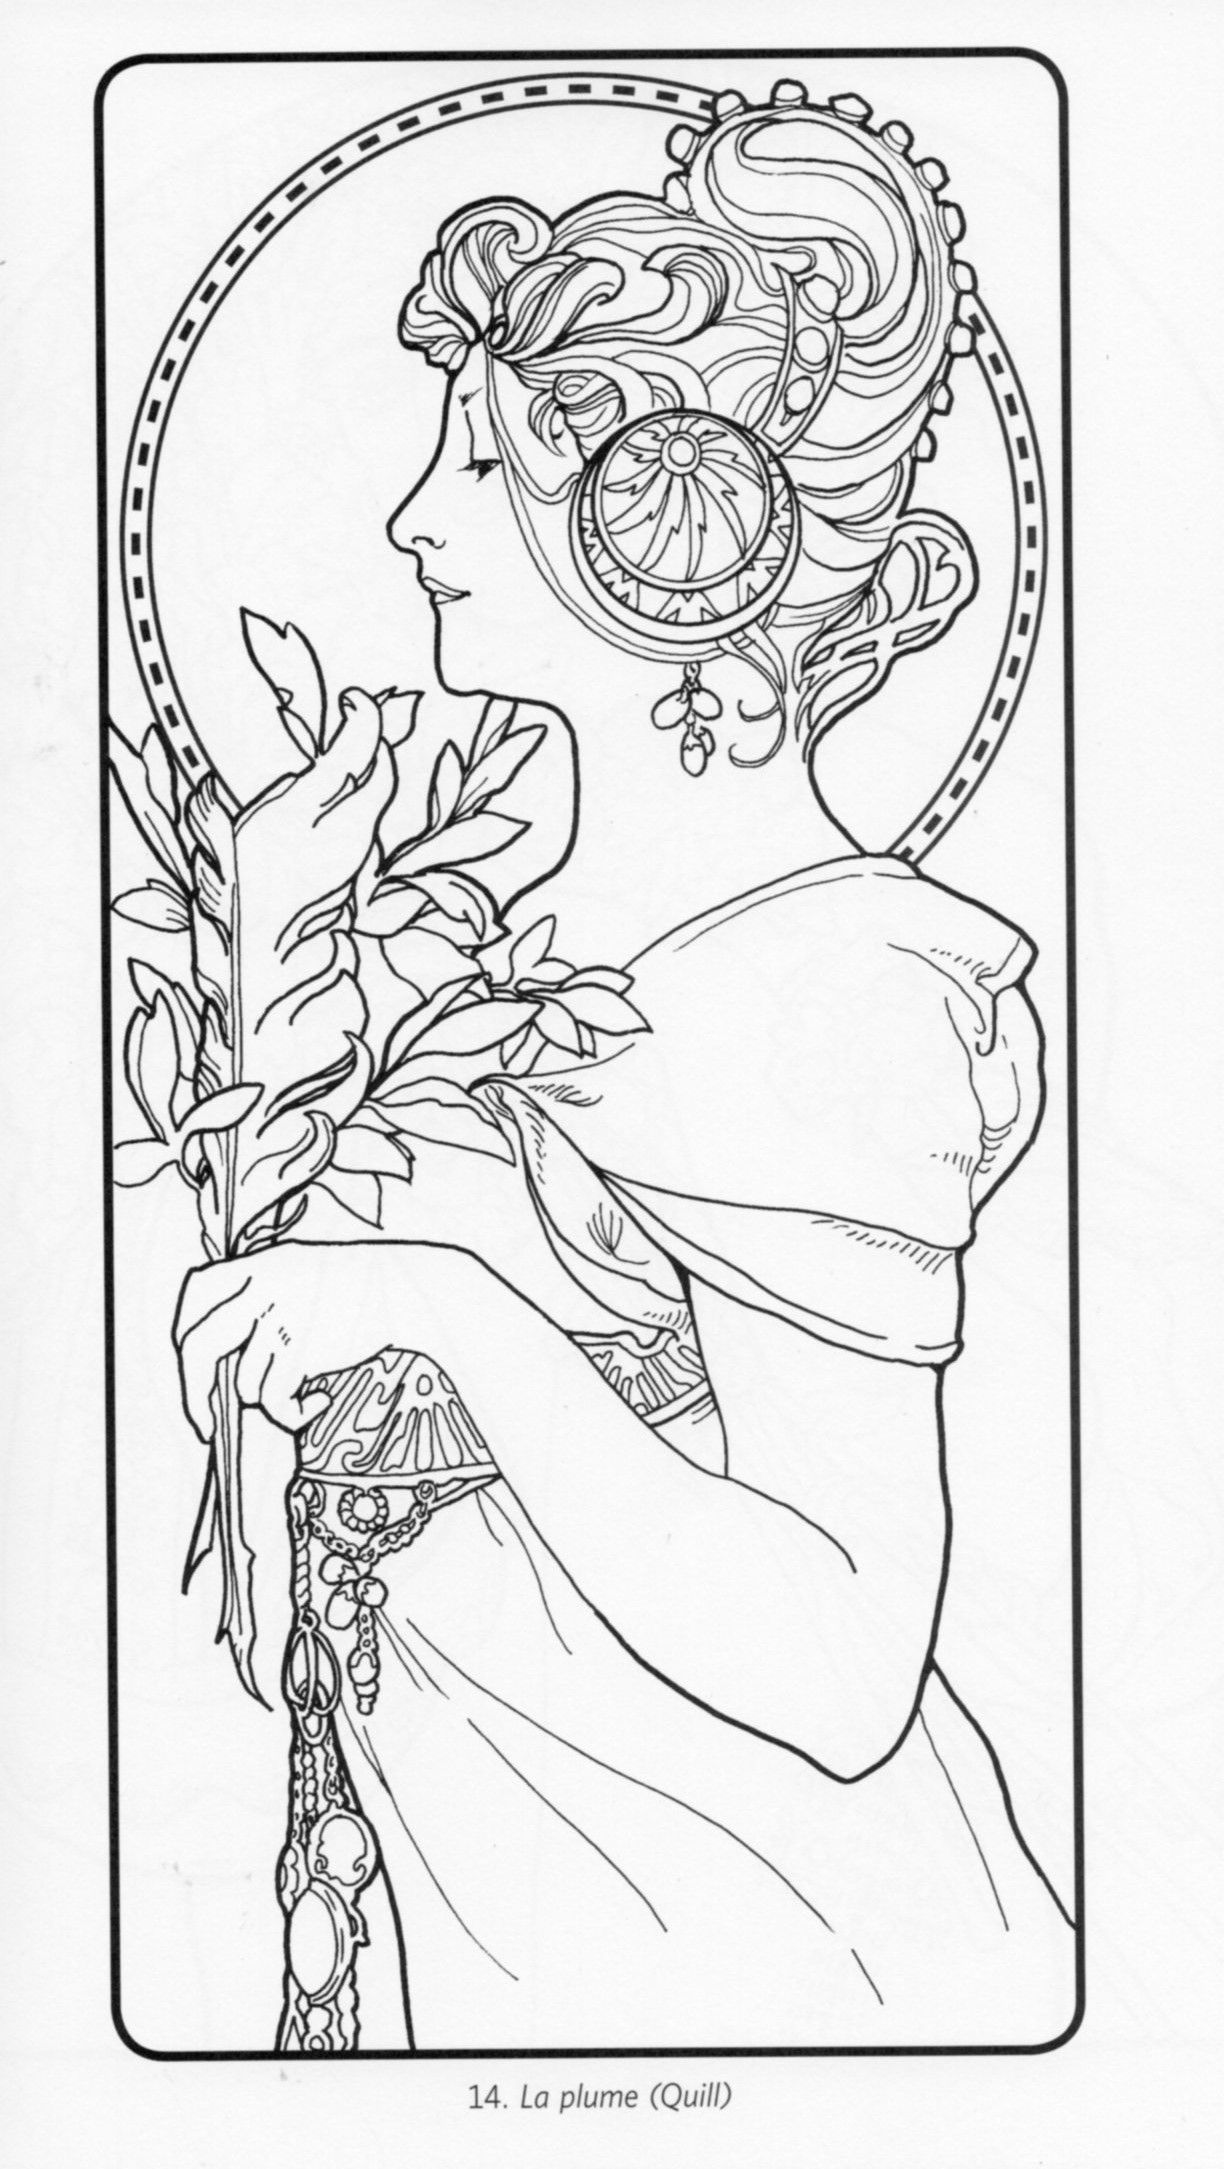 Alphonse Mucha Coloring Pages <b>alphonse mucha coloring book</b ...